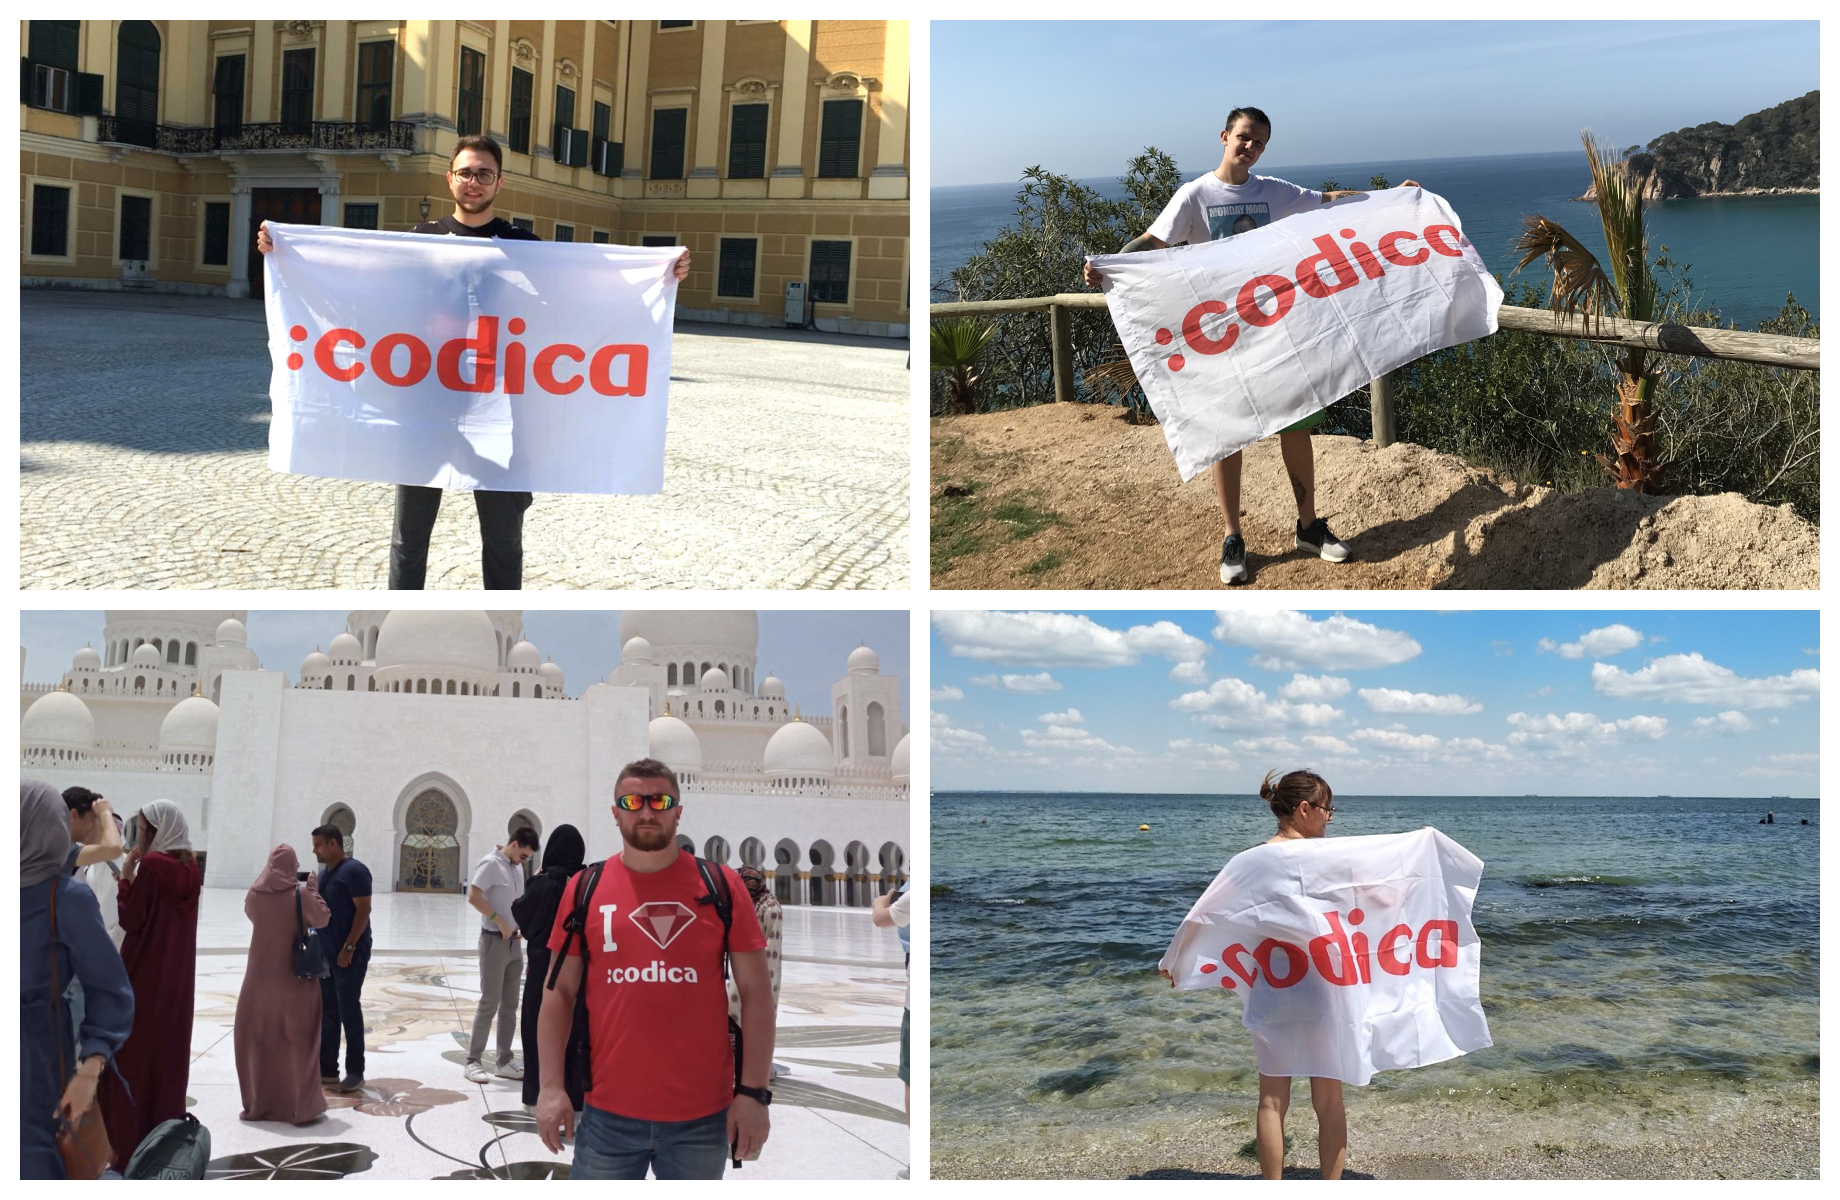 Some vacation images from our team